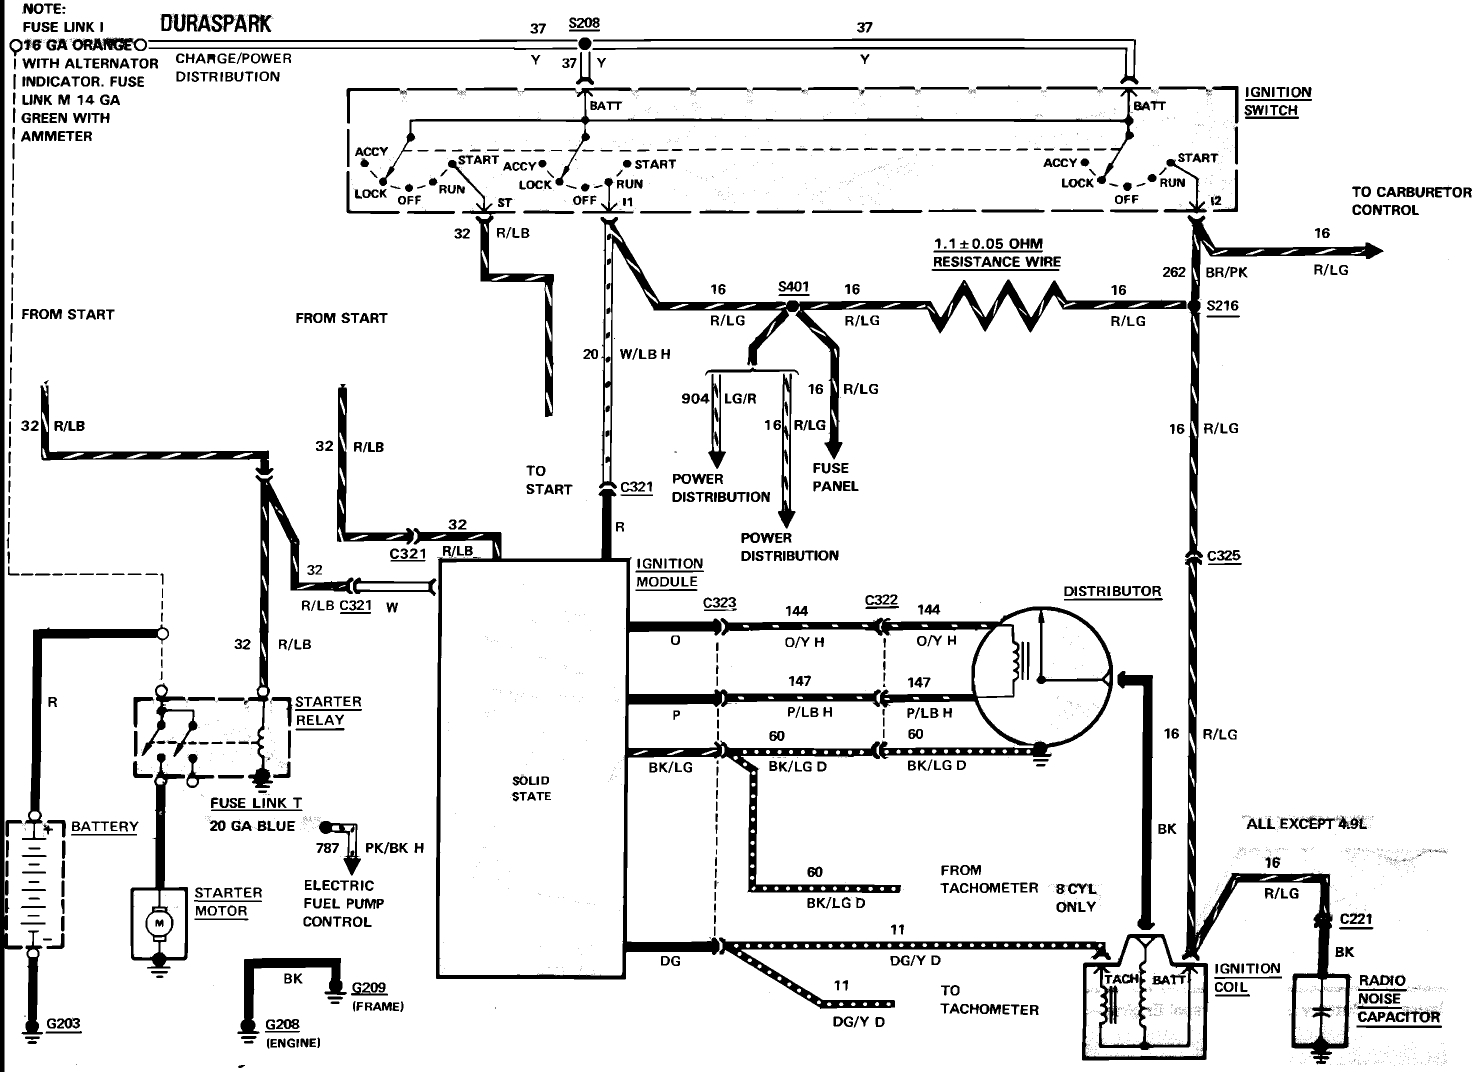 1989 ford f150 ignition wiring diagram | free wiring diagram 1984 ford f 150 wiring diagrams